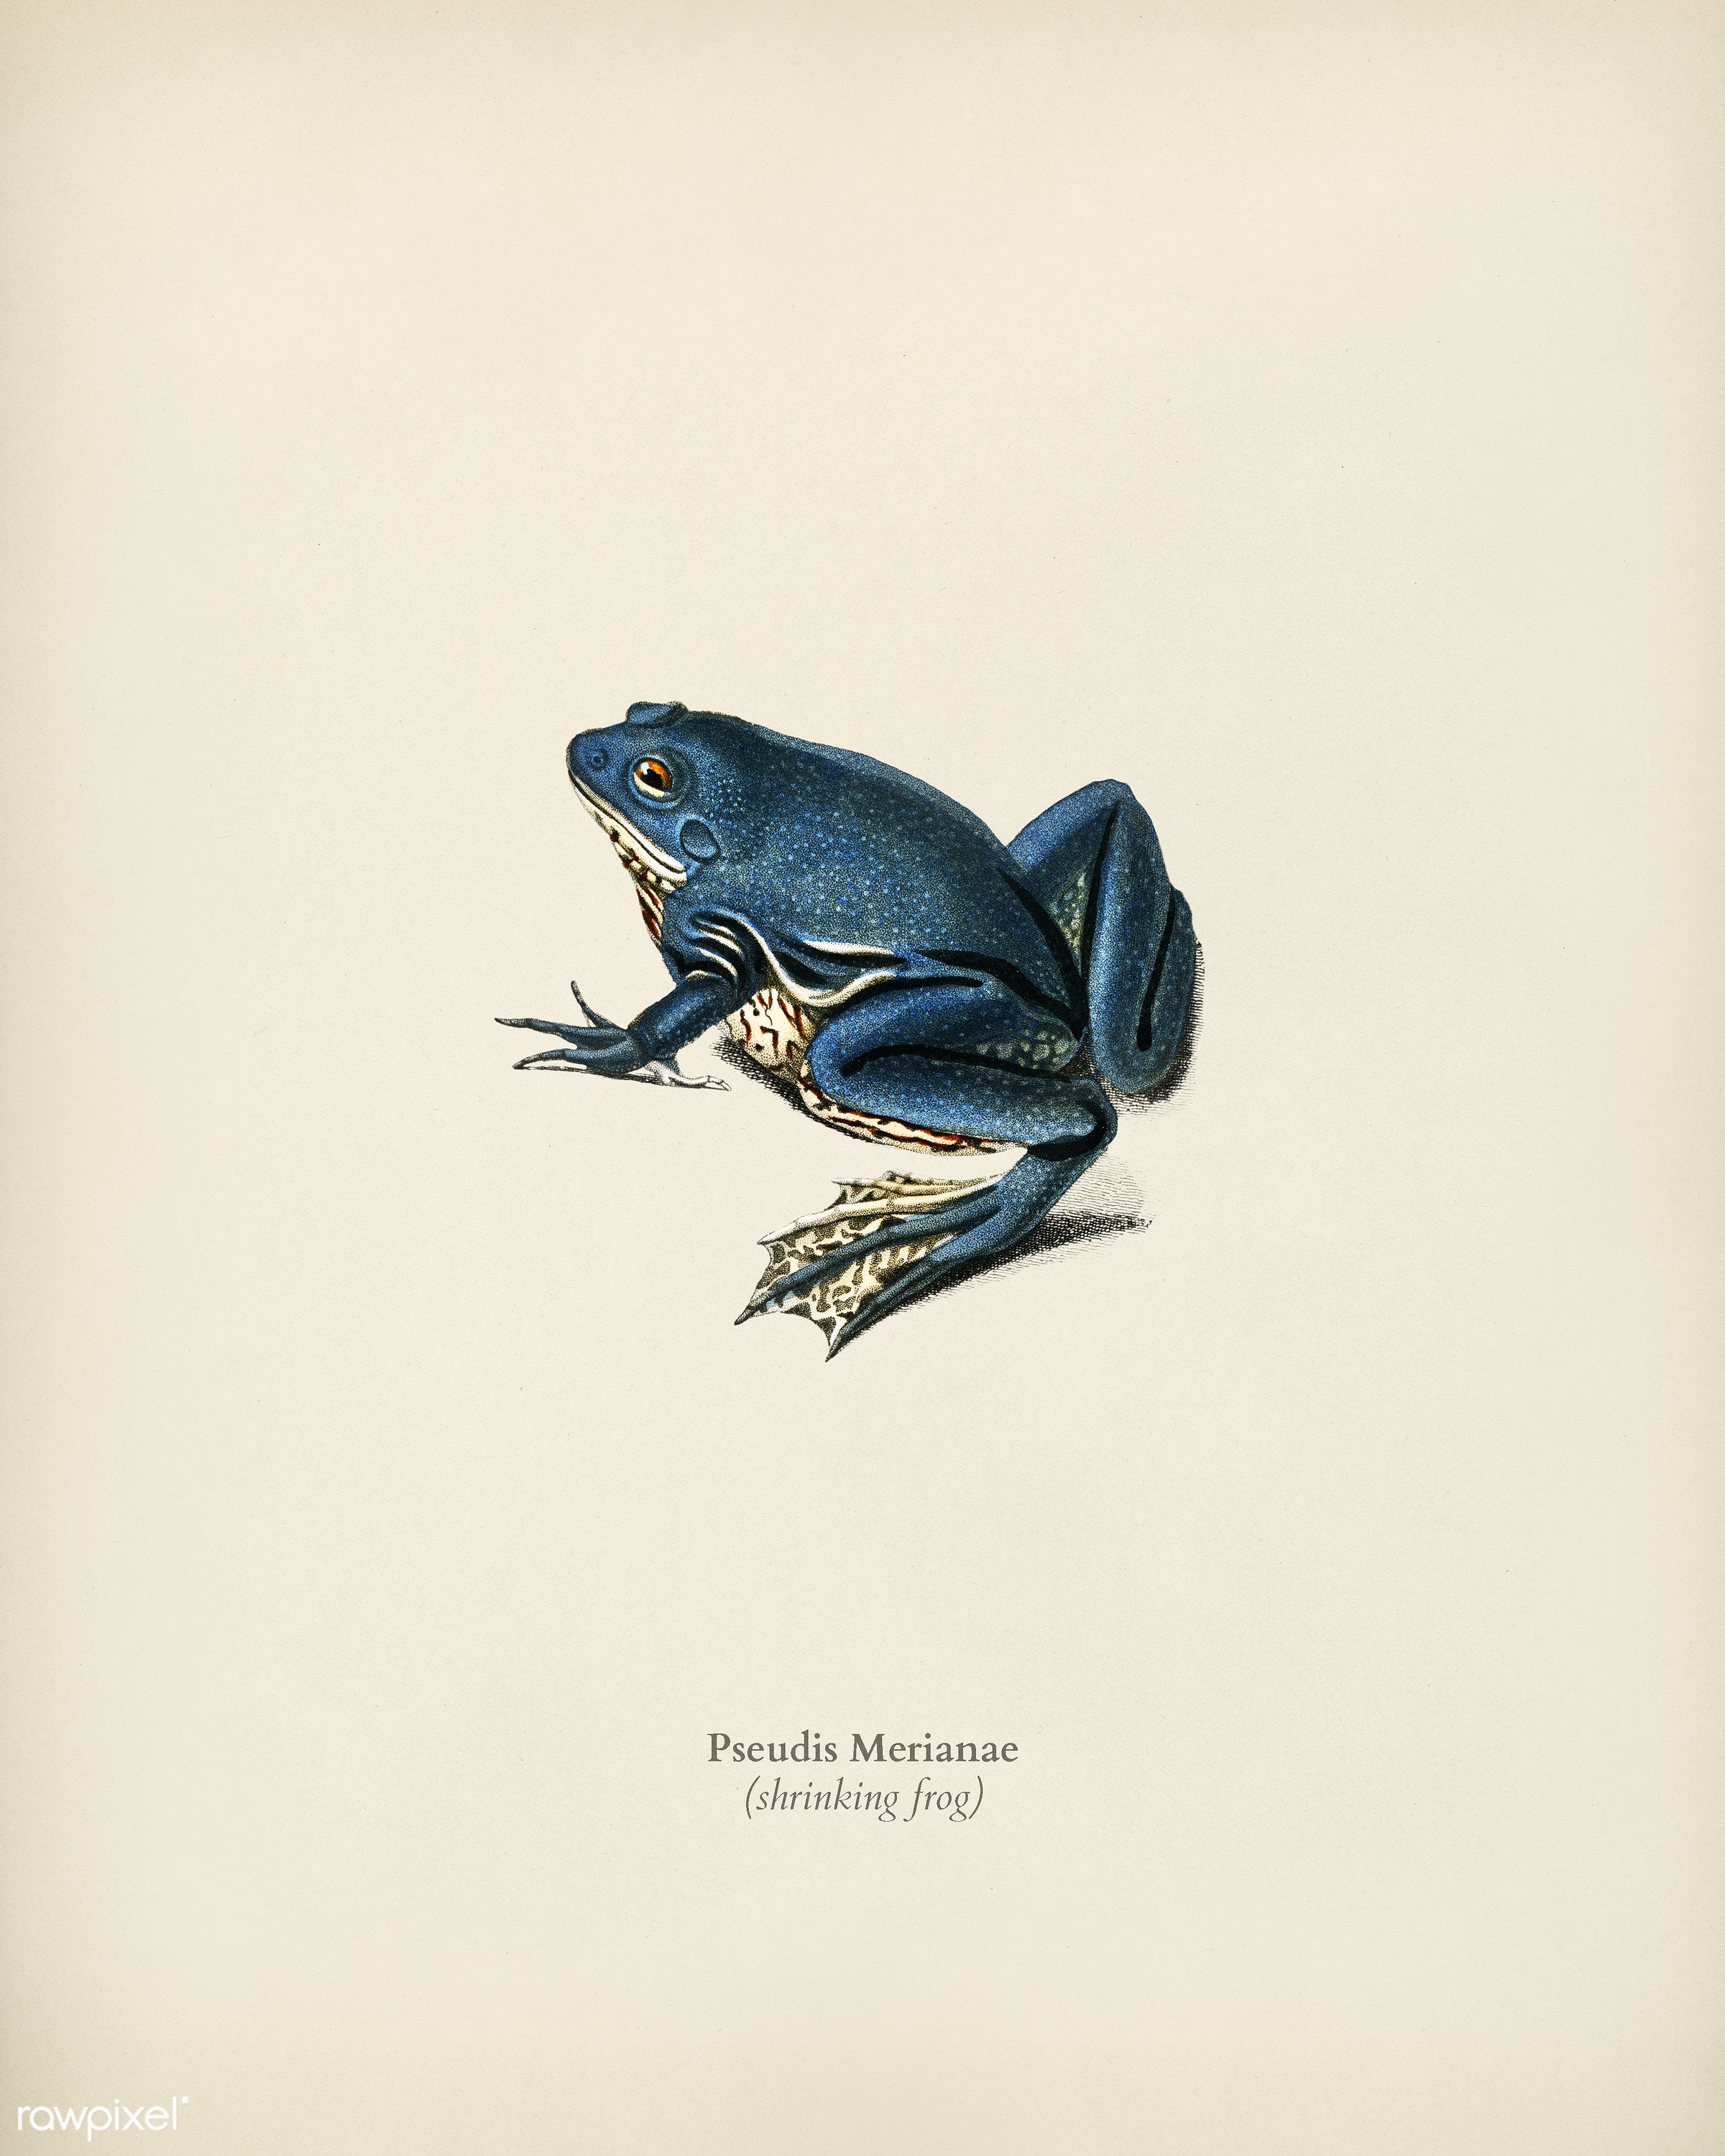 Shrinking frog (Pseudis Merianae) illustrated by Charles Dessalines D' Orbigny (1806-1876). Digitally enhanced from our...